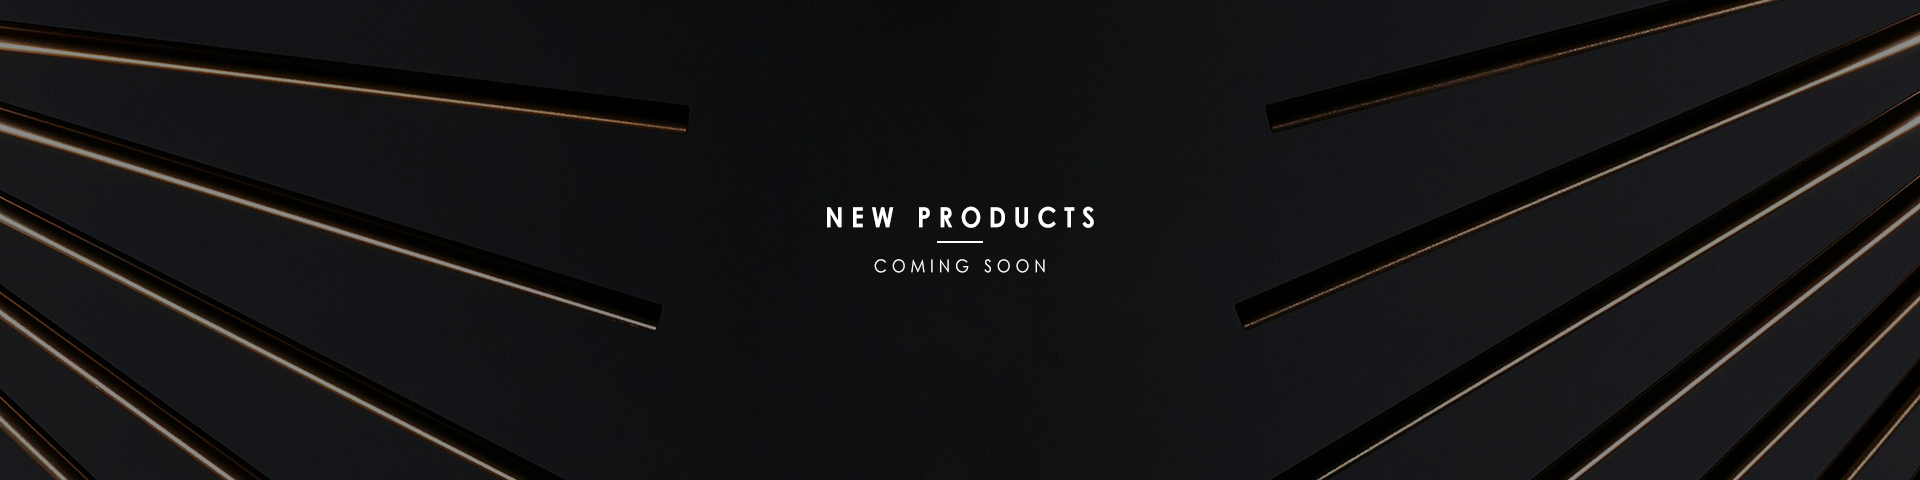 fouldal_banner_new_products_coming_soon